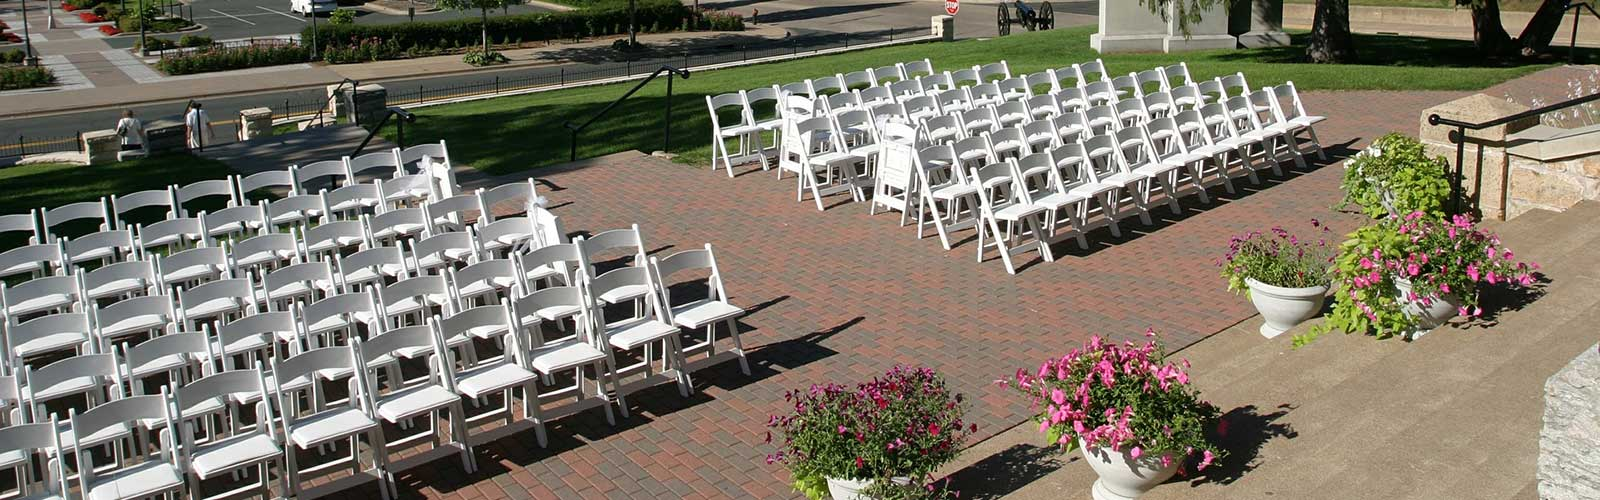 Event rentals in East King and Southern Snohomish Counties